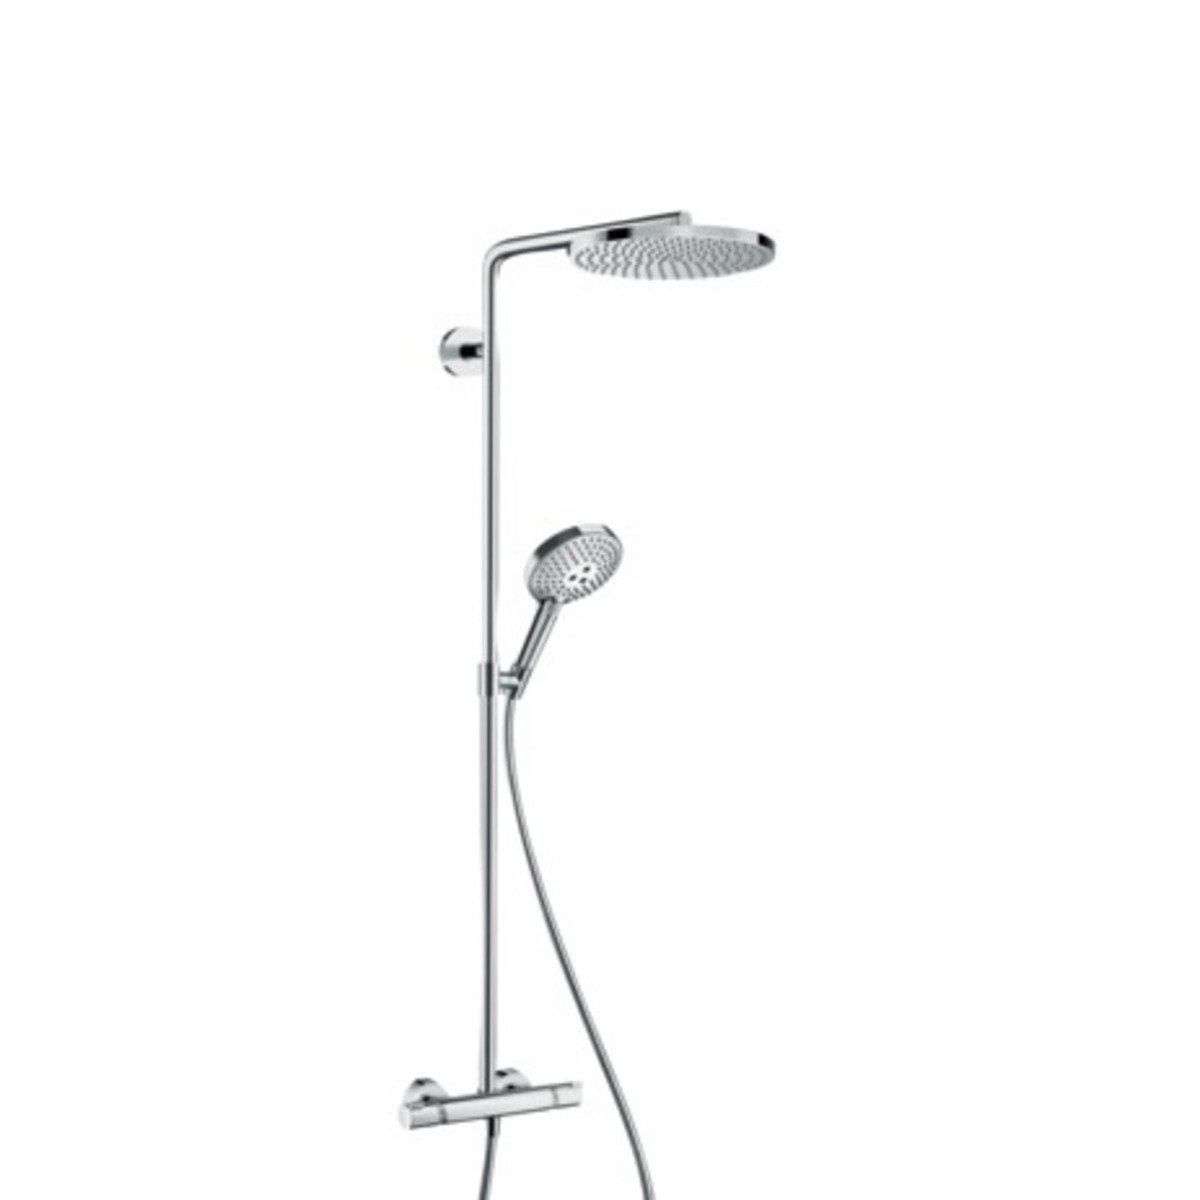 hansgrohe raindance select s 240 powderrain 2jet showerpipe met ecostat comfort douchekraan. Black Bedroom Furniture Sets. Home Design Ideas